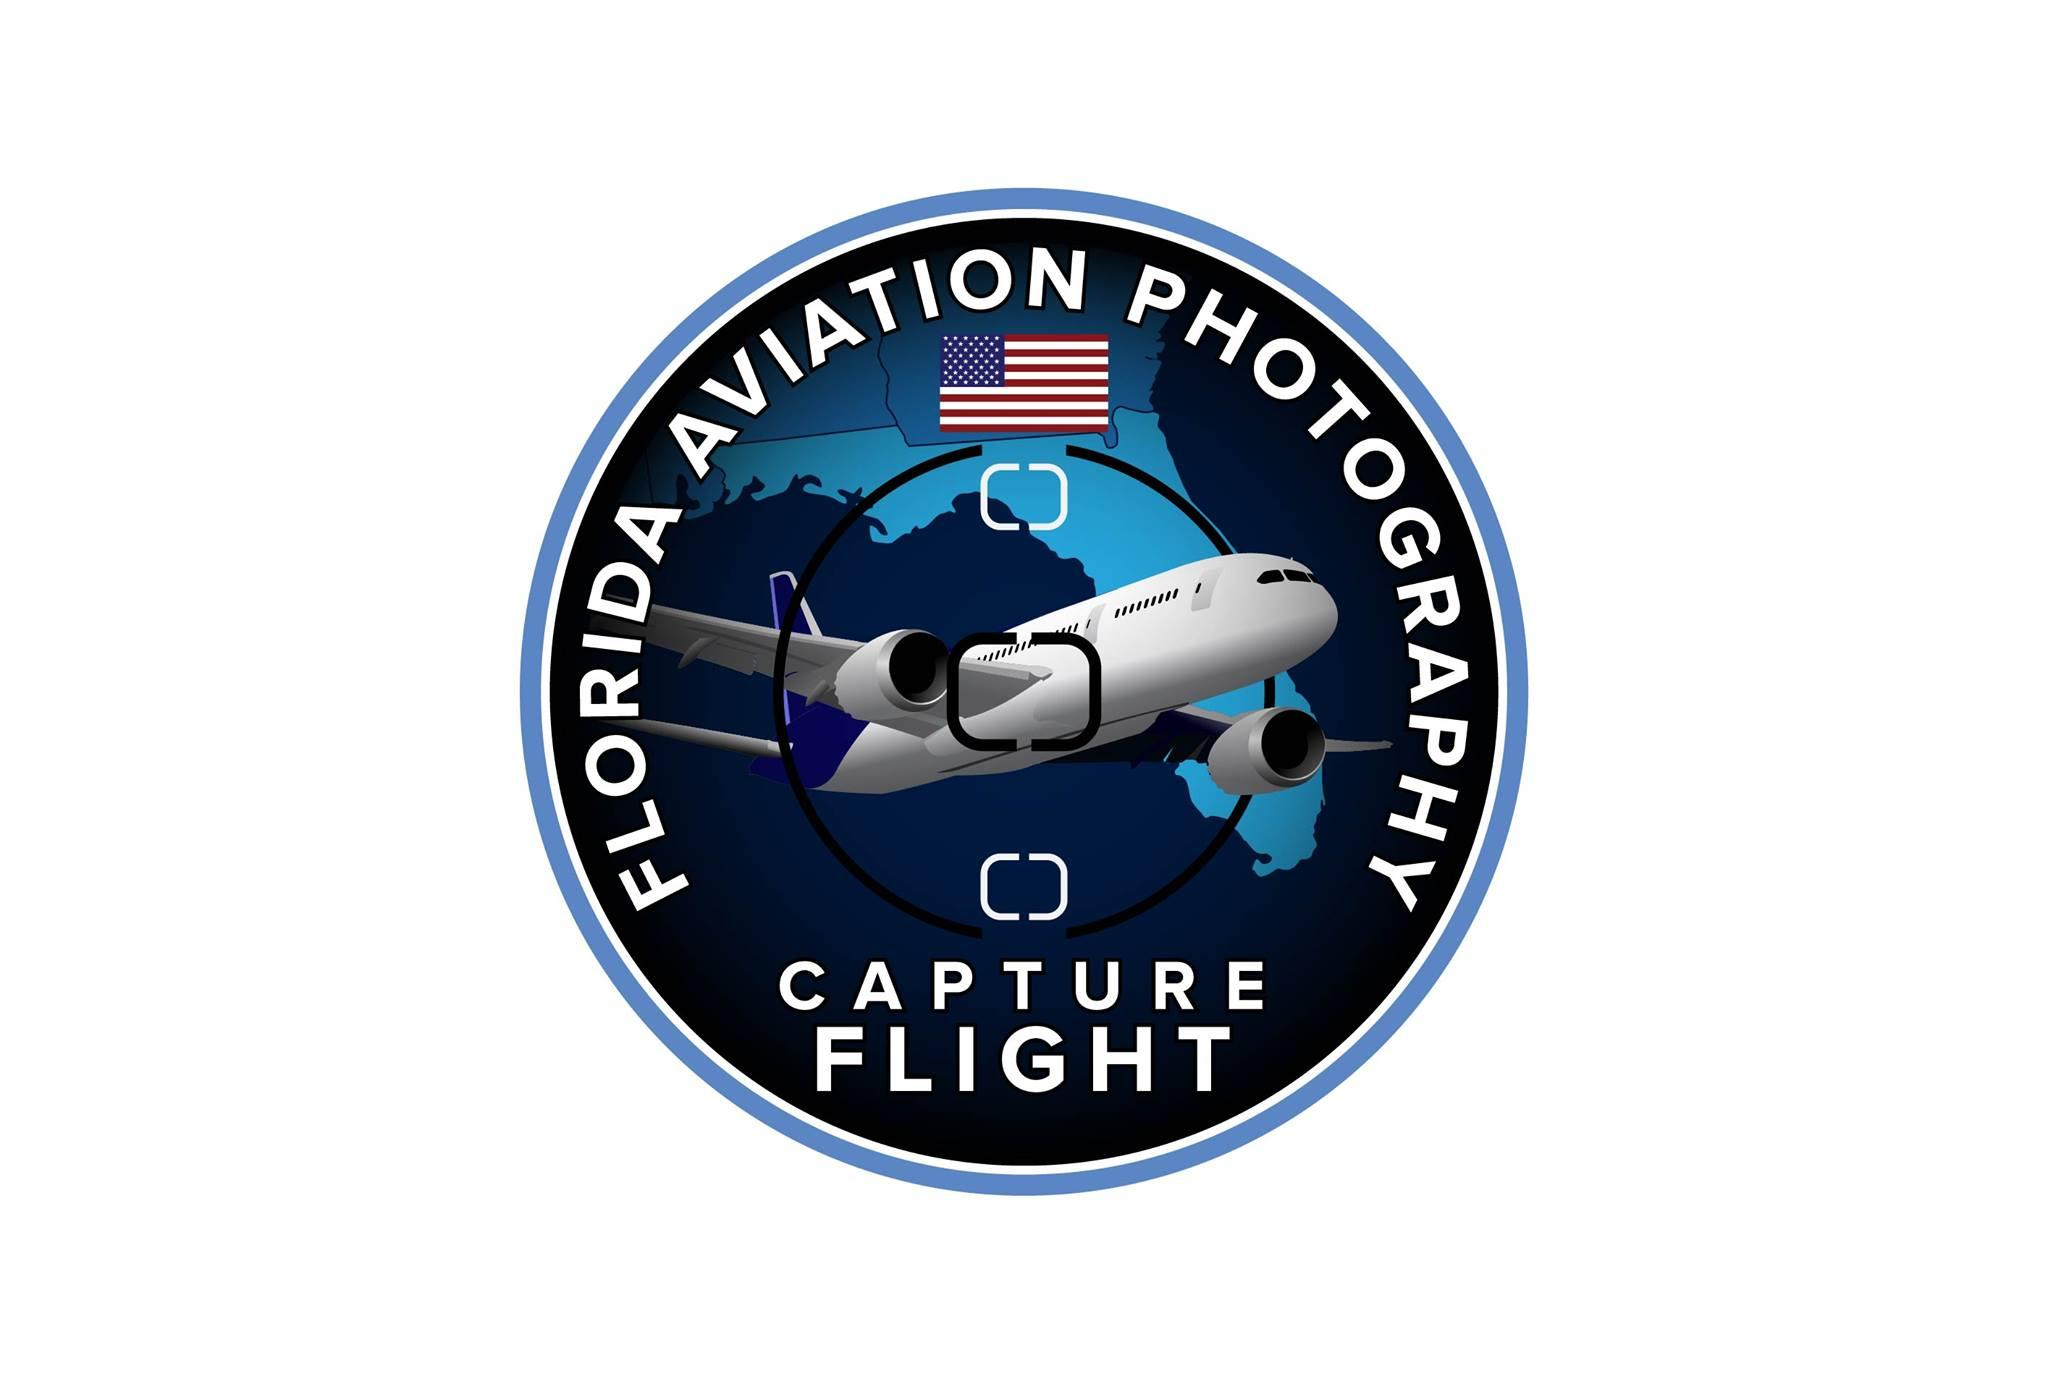 Florida Aviation Photography Convention 2020